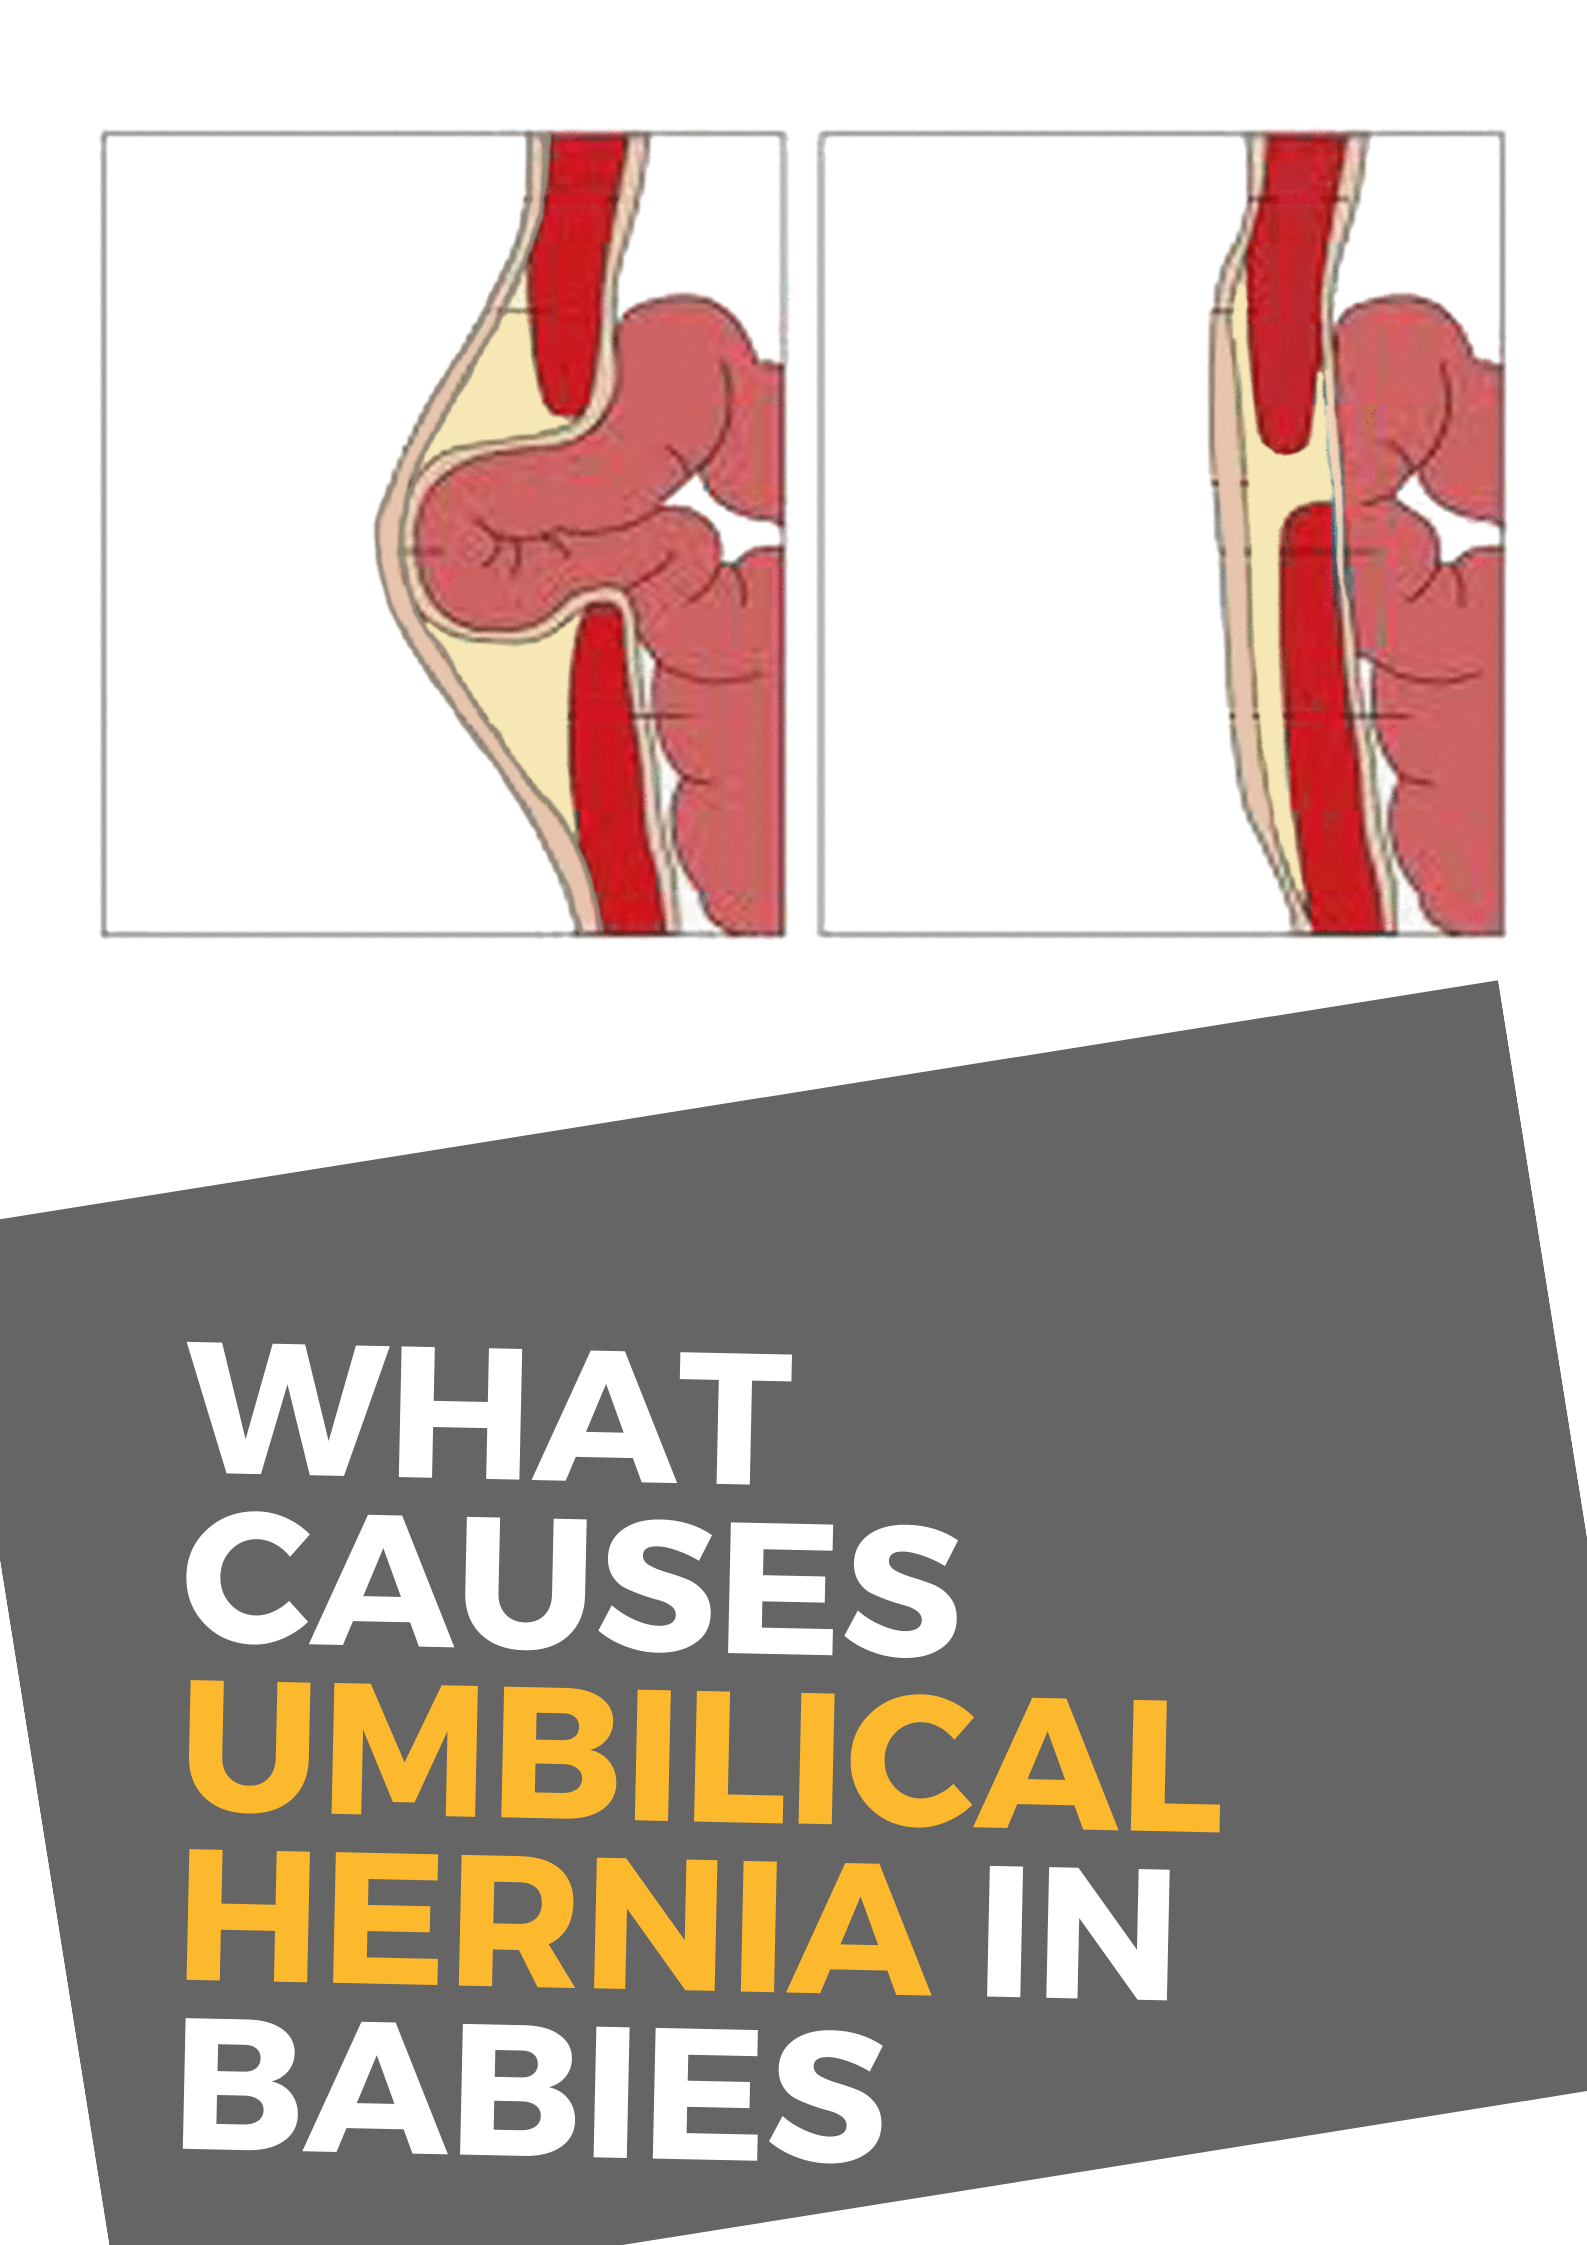 What Causes Umbilical Hernia In Babies